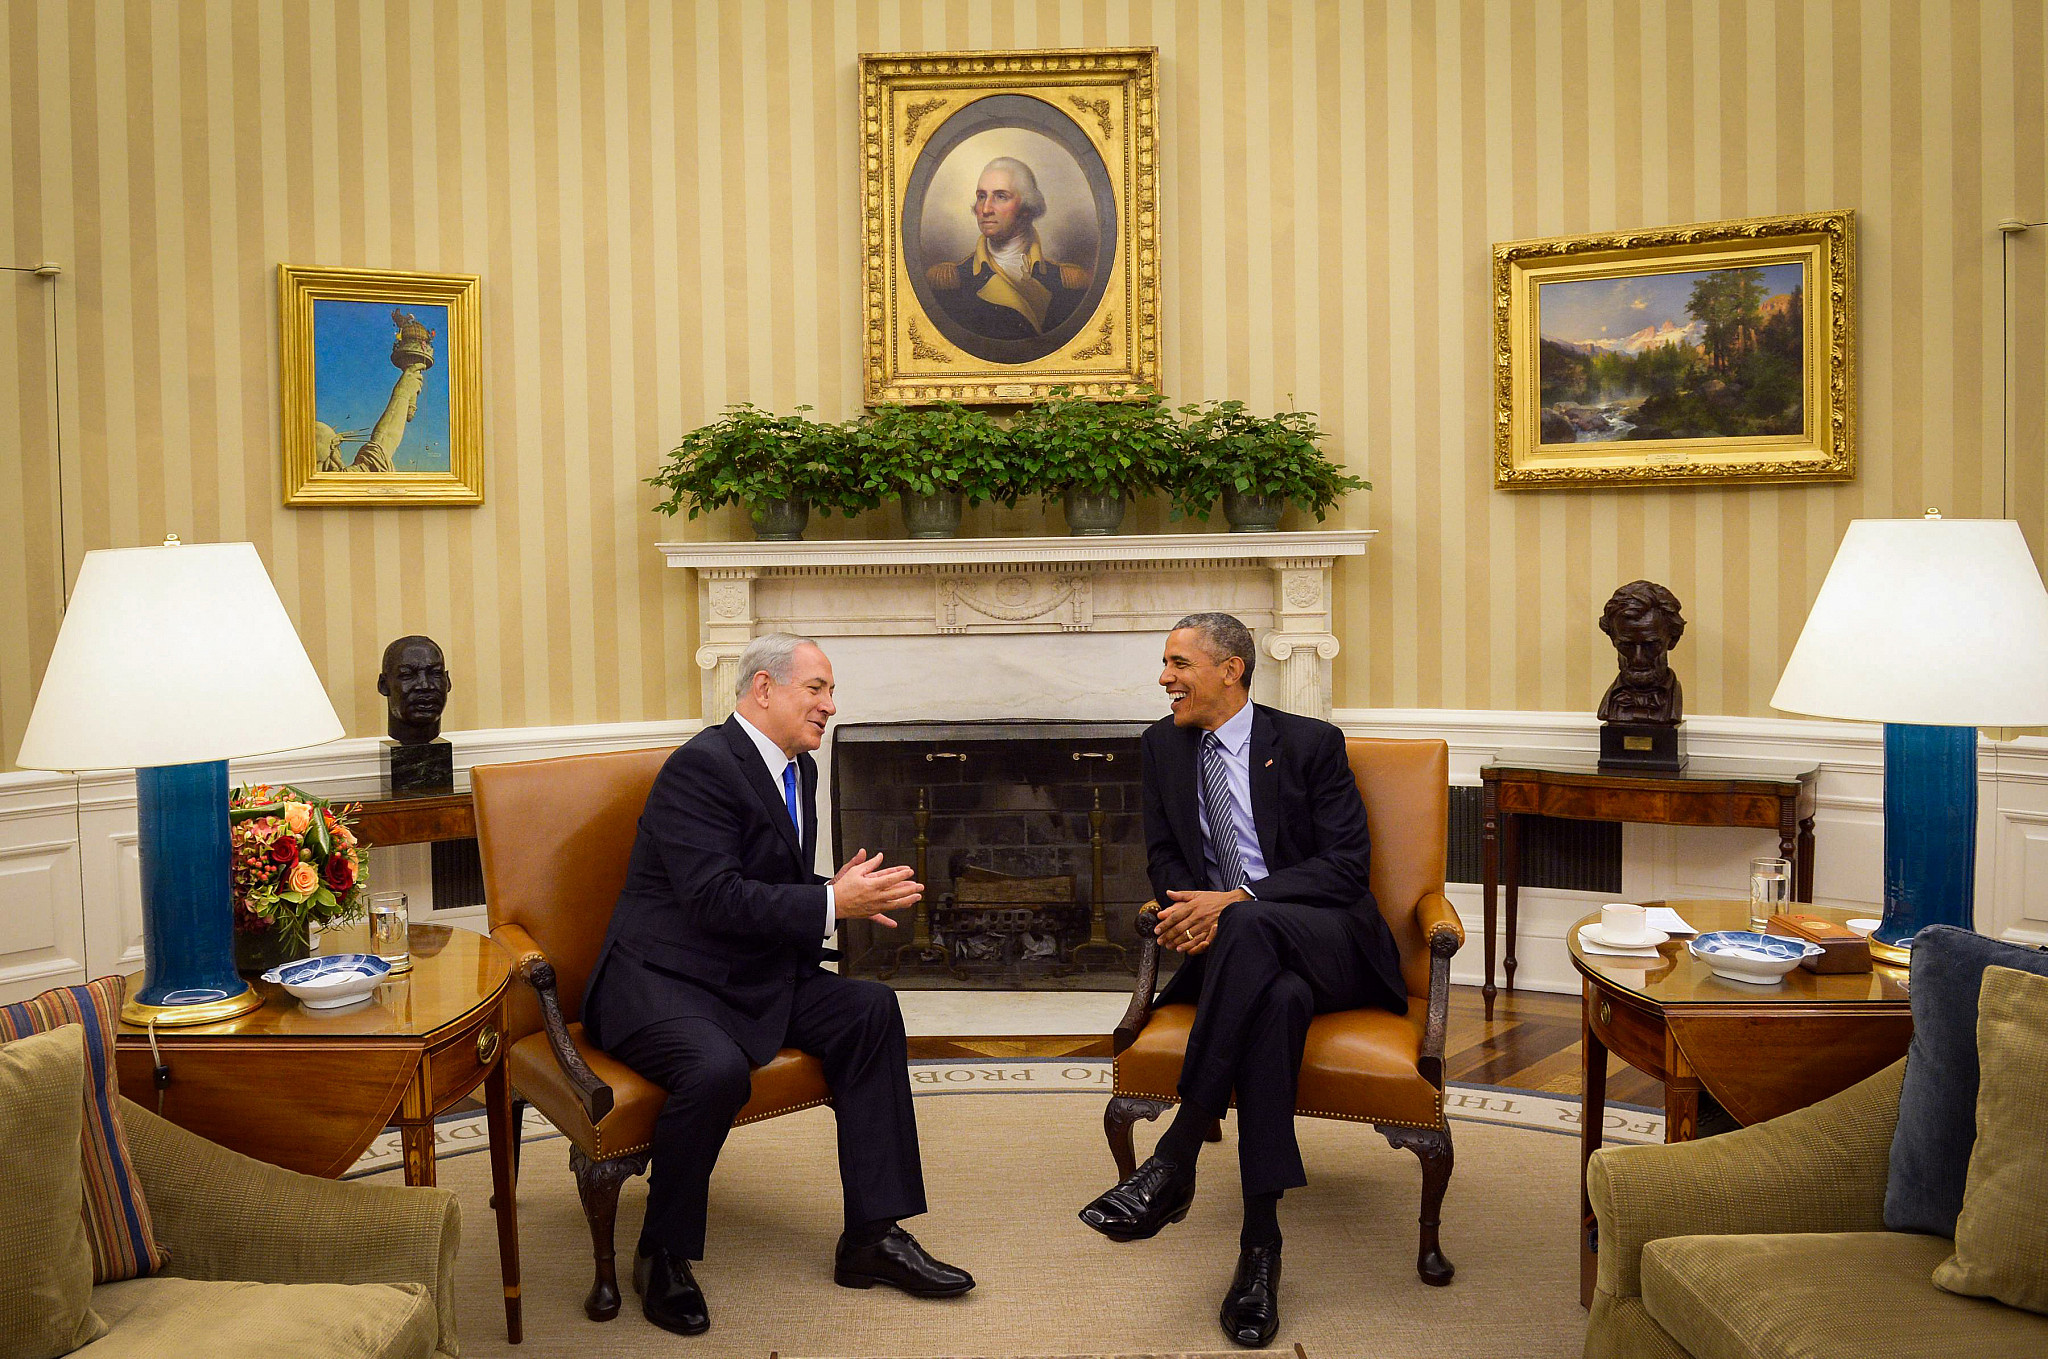 From Clinton to Obama, U.S. peace deals have paved the path to apartheid